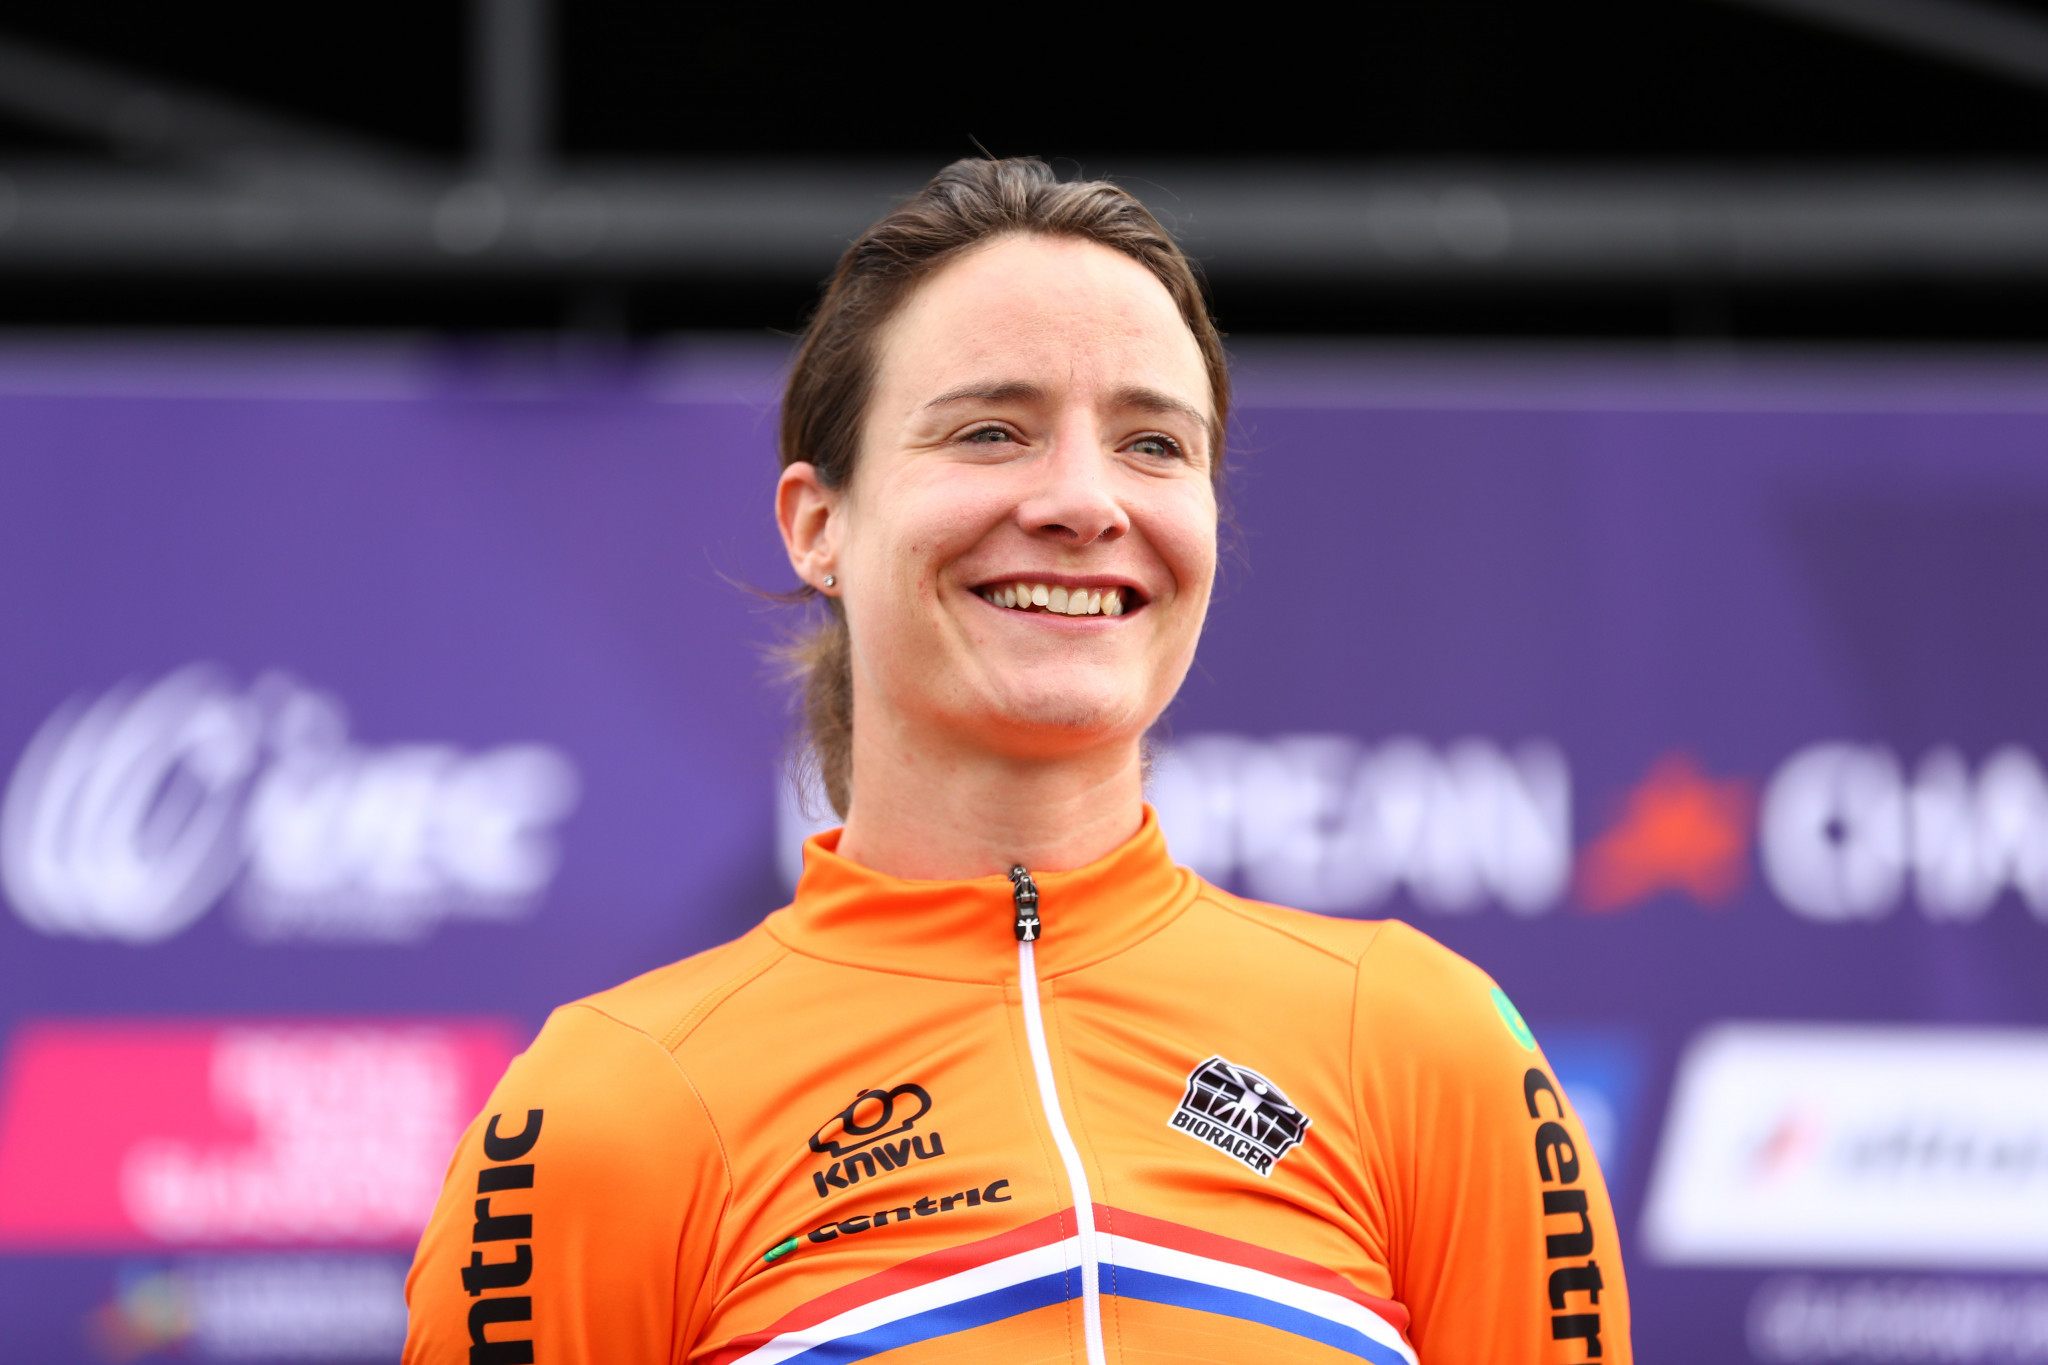 Olympic champion Vos suggests Tokyo 2020 road cycling courses go against gender equality